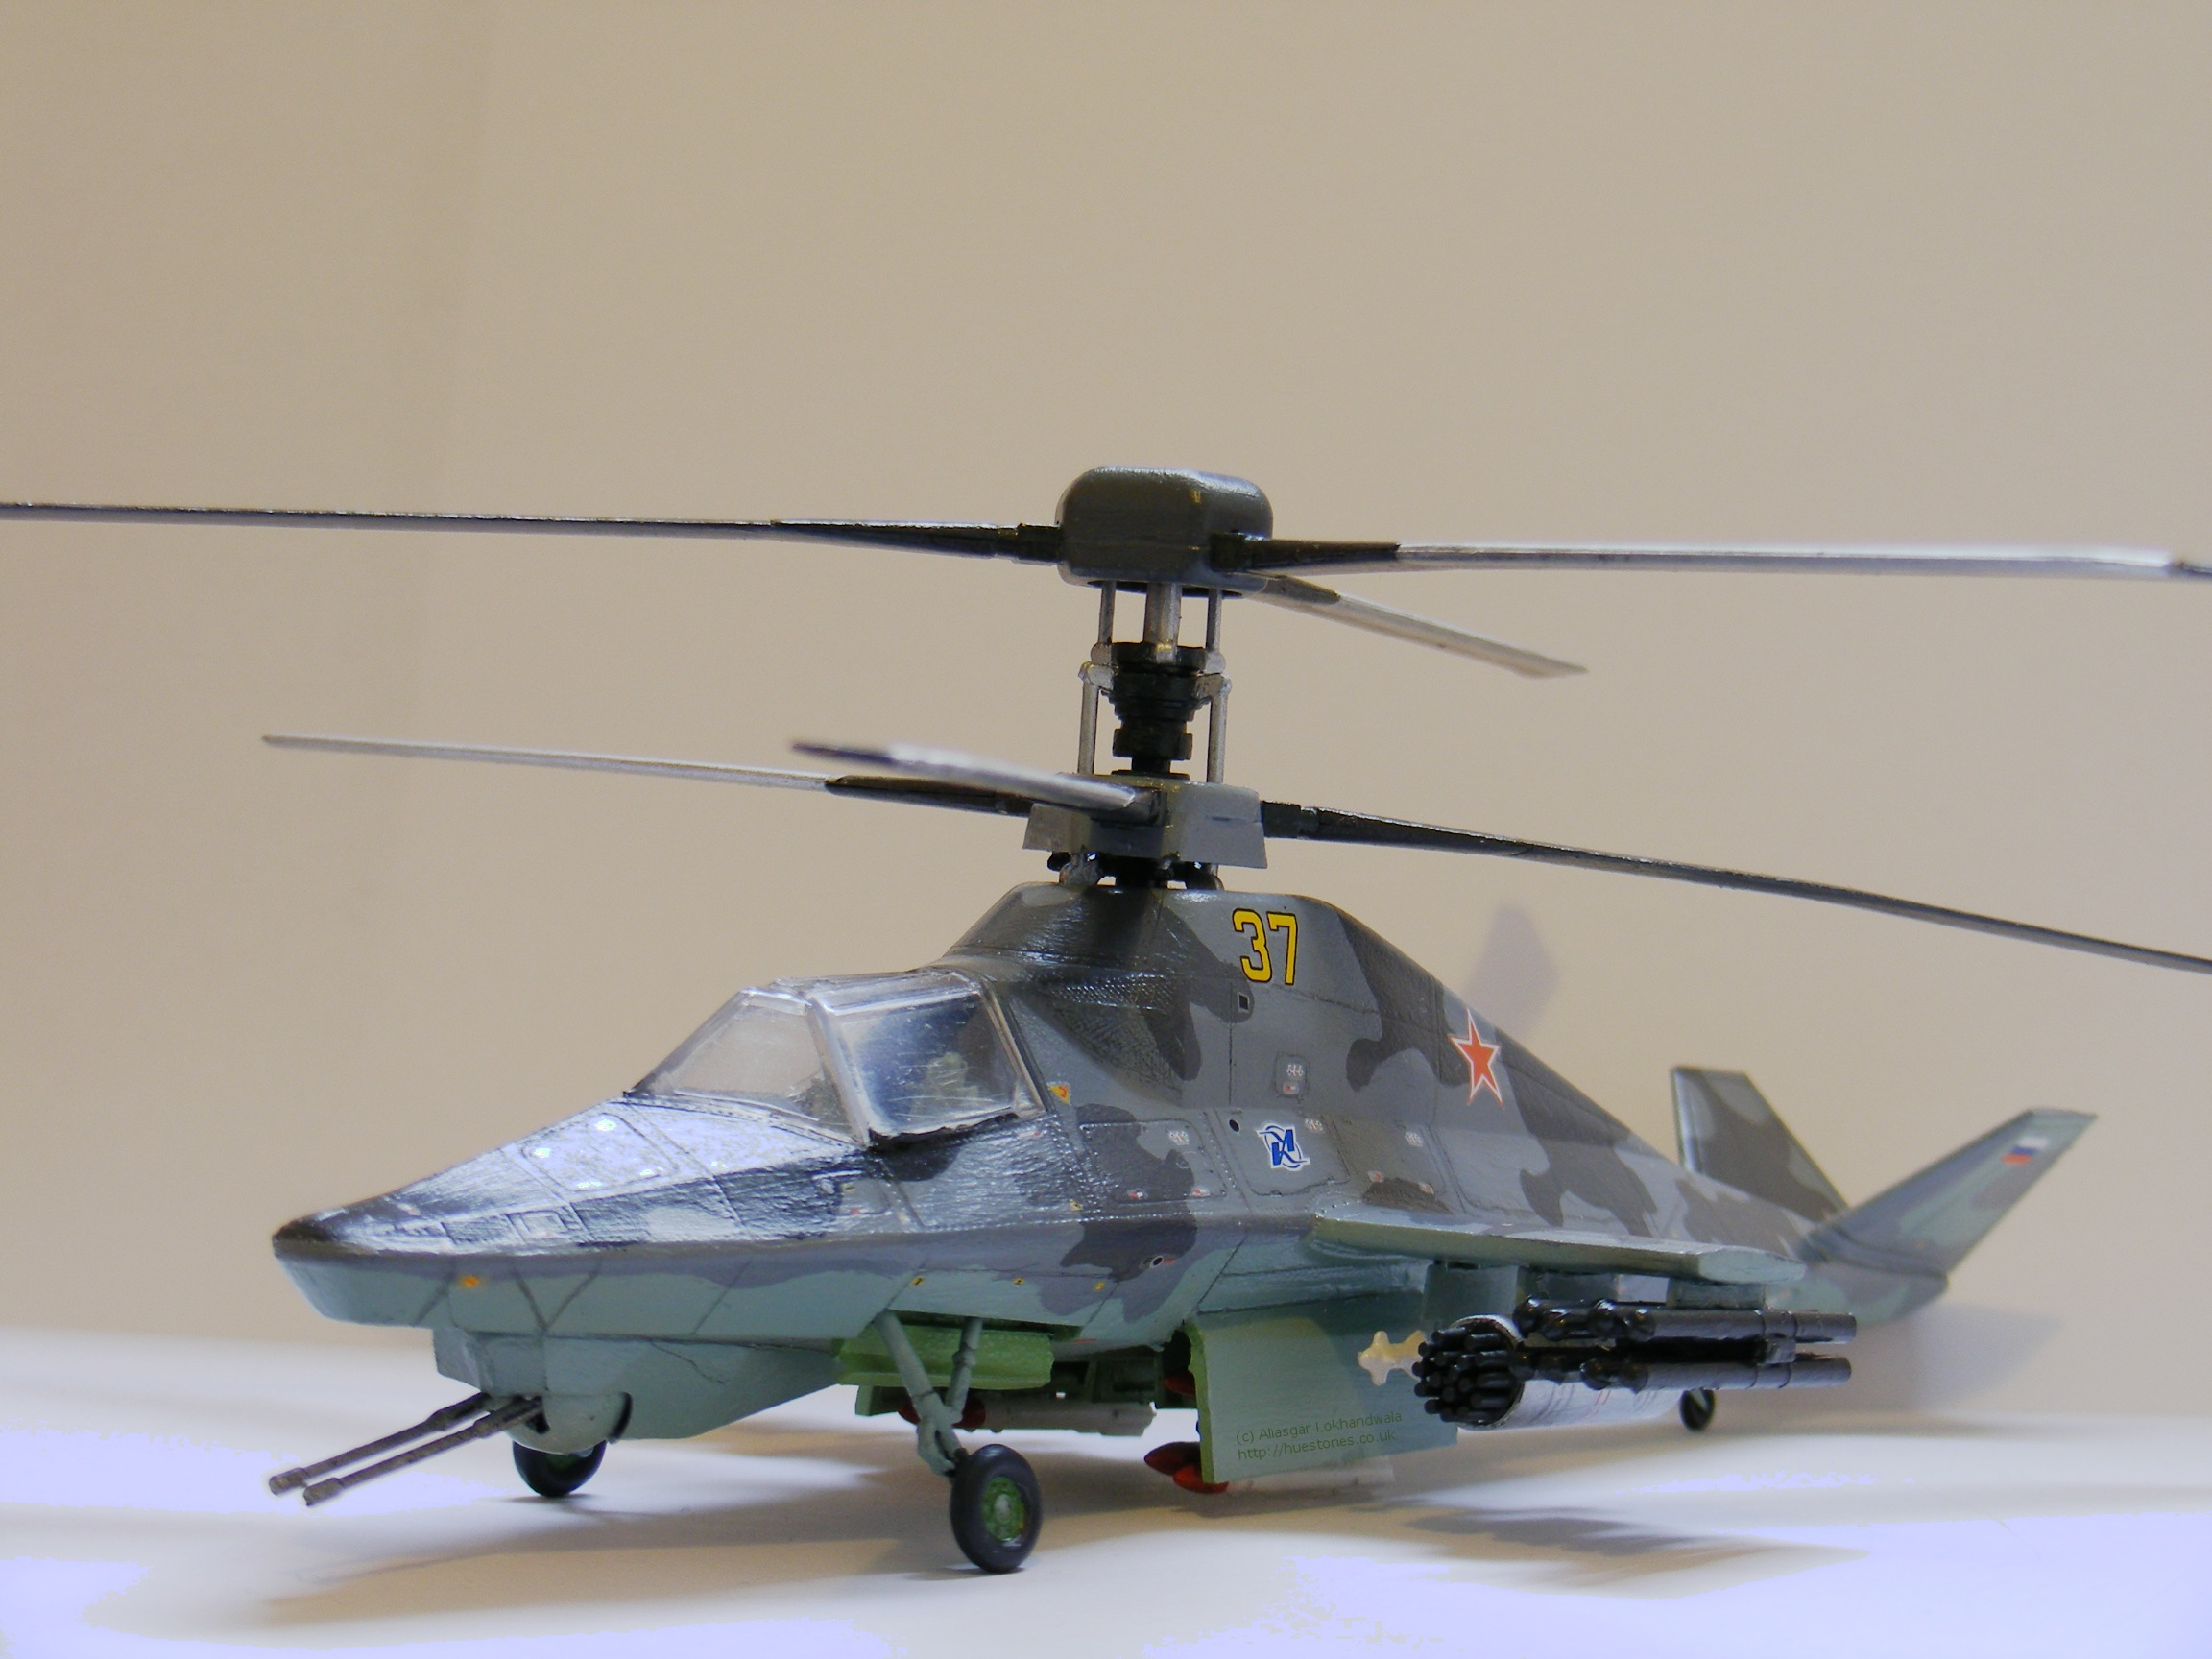 type 3 helicopter with File Revell Kamov Ka 58 on File USCG HH 65 furthermore University Of Washington further Rush Hour 2 also File Revell Kamov Ka 58 in addition Volvo Xc90 2017 1897.